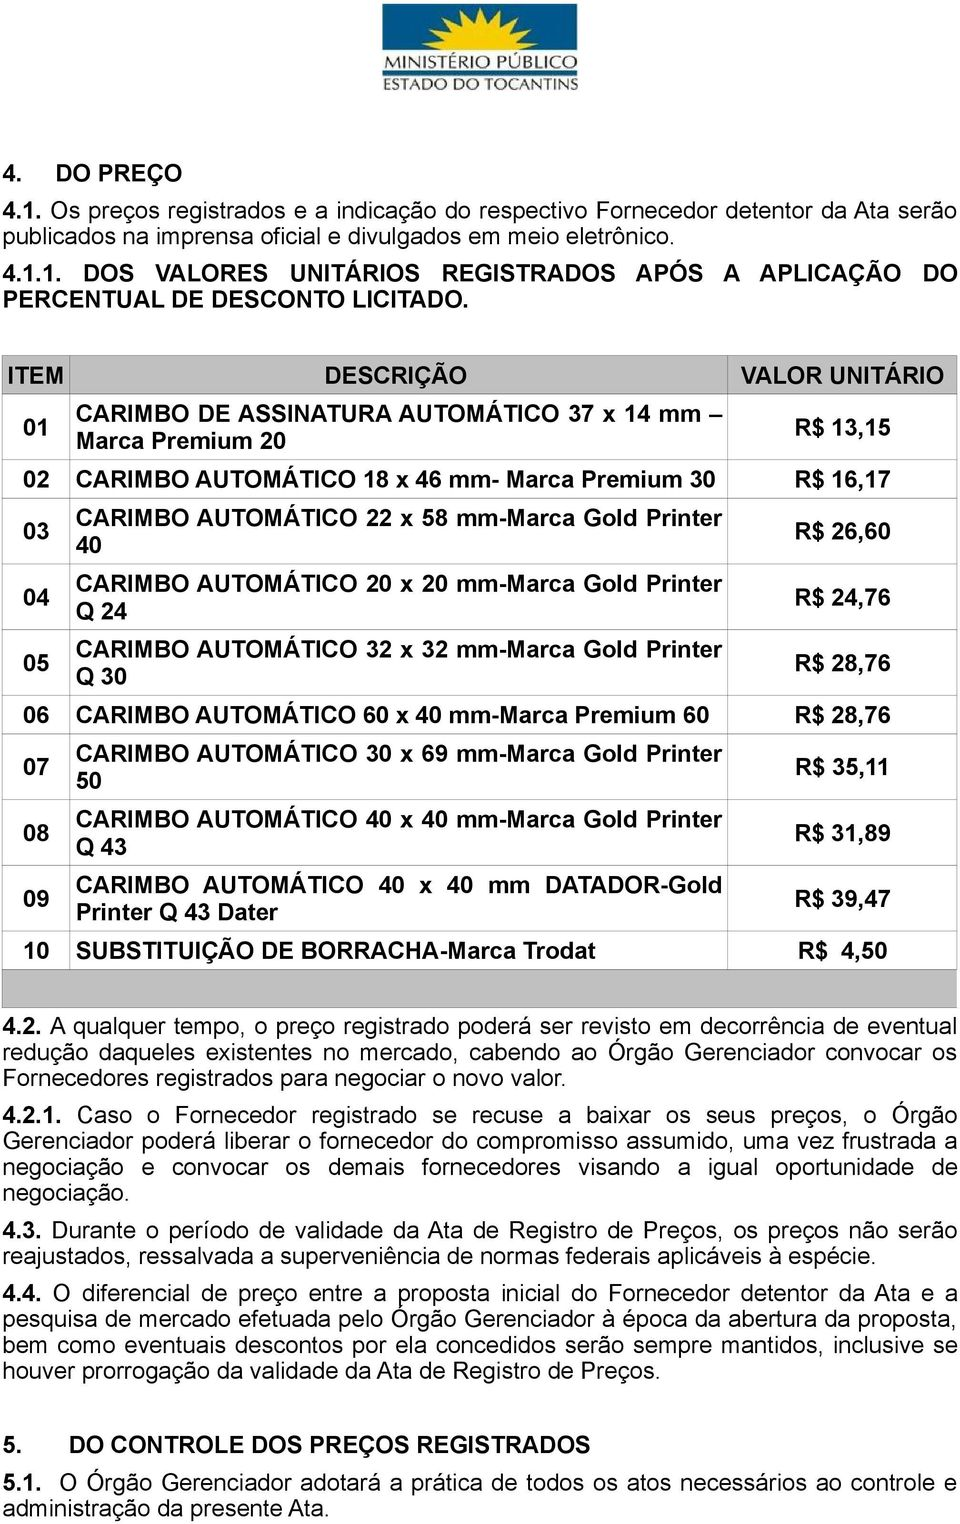 mm-marca Gold Printer 40 CARIMBO AUTOMÁTICO 20 x 20 mm-marca Gold Printer Q 24 CARIMBO AUTOMÁTICO 32 x 32 mm-marca Gold Printer Q 30 R$ 26,60 R$ 24,76 R$ 28,76 06 CARIMBO AUTOMÁTICO 60 x 40 mm-marca